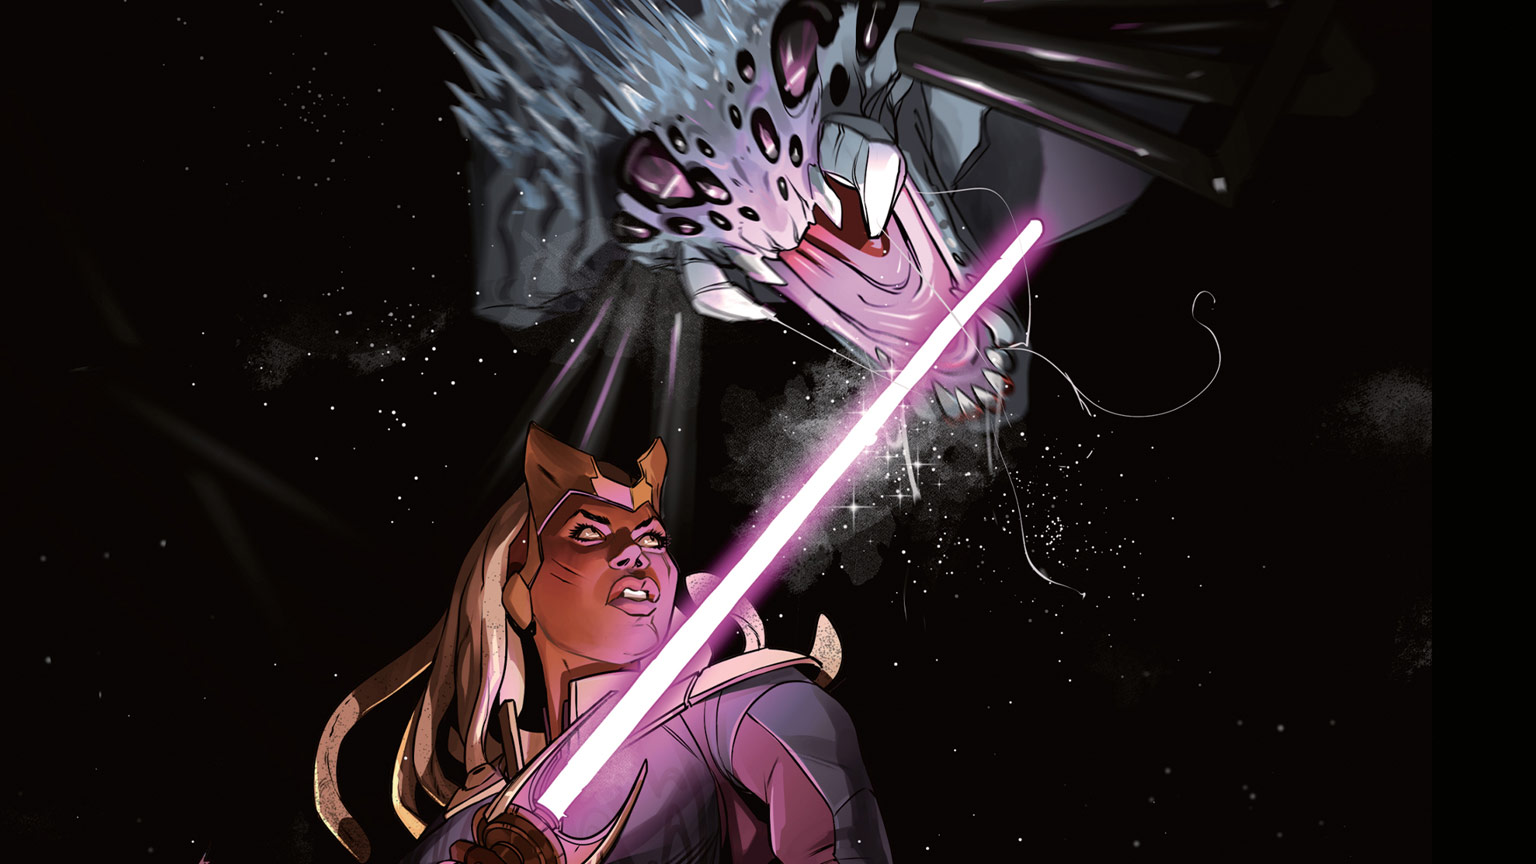 Star Wars: The High Republic:The Monster of Temple Peak issue #2 cover